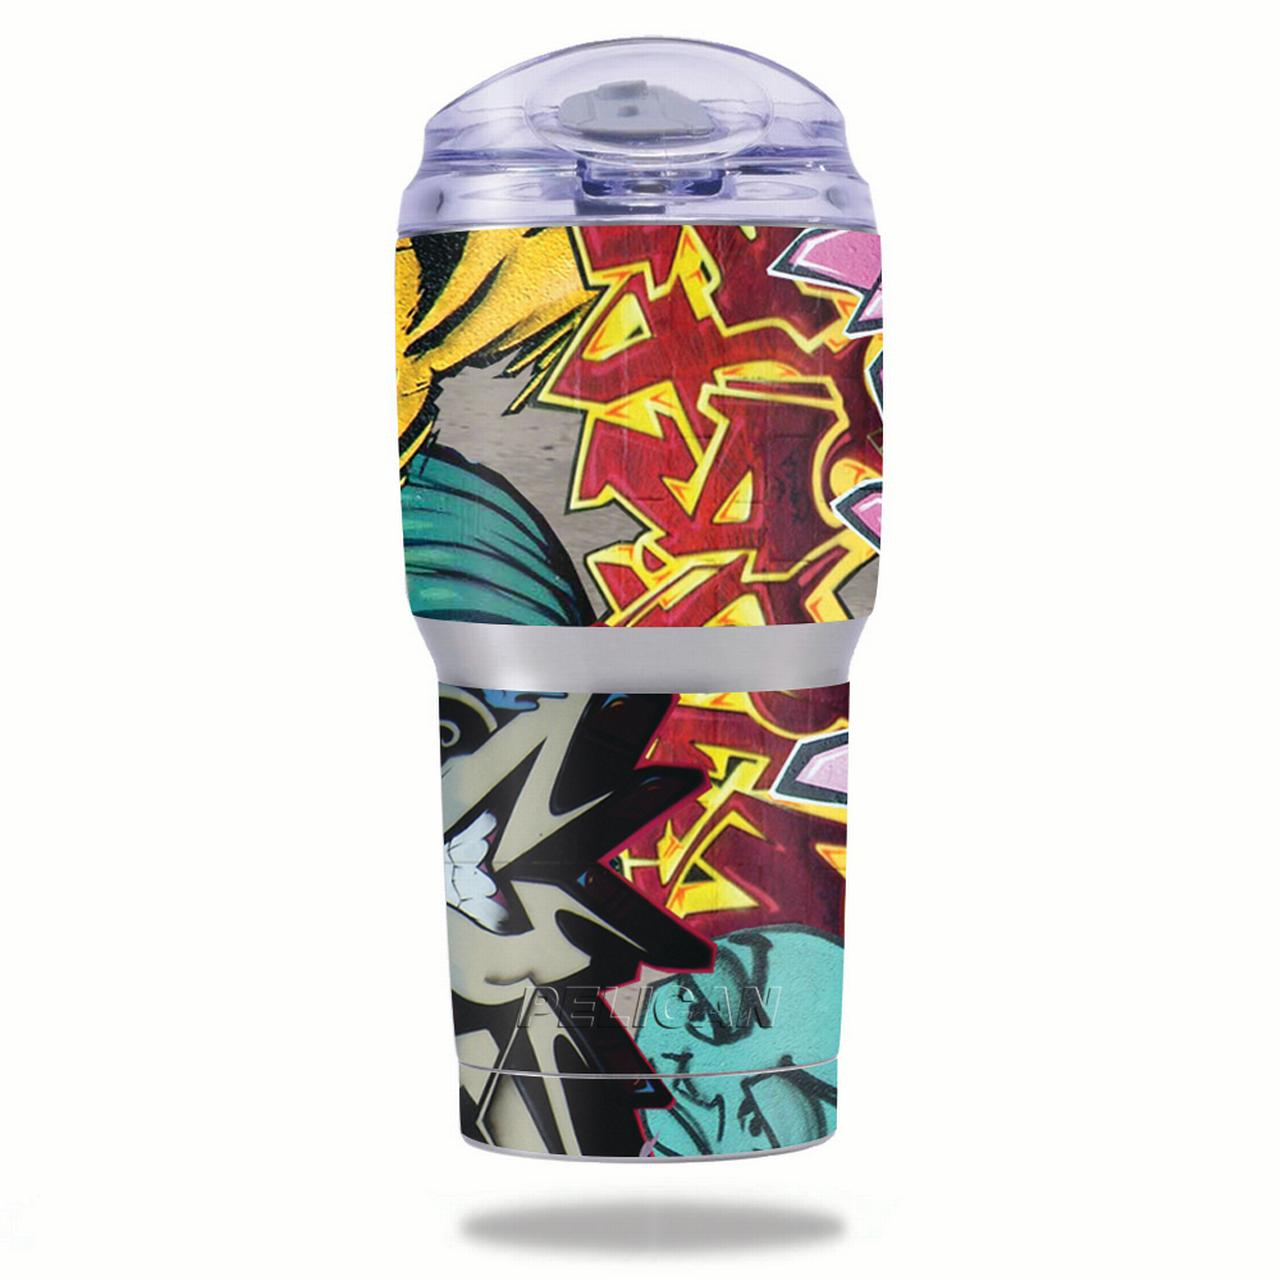 MightySkins Protective Vinyl Skin Decal for Pelican Tumbler 22 oz wrap cover sticker skins Graffiti Wild Styles